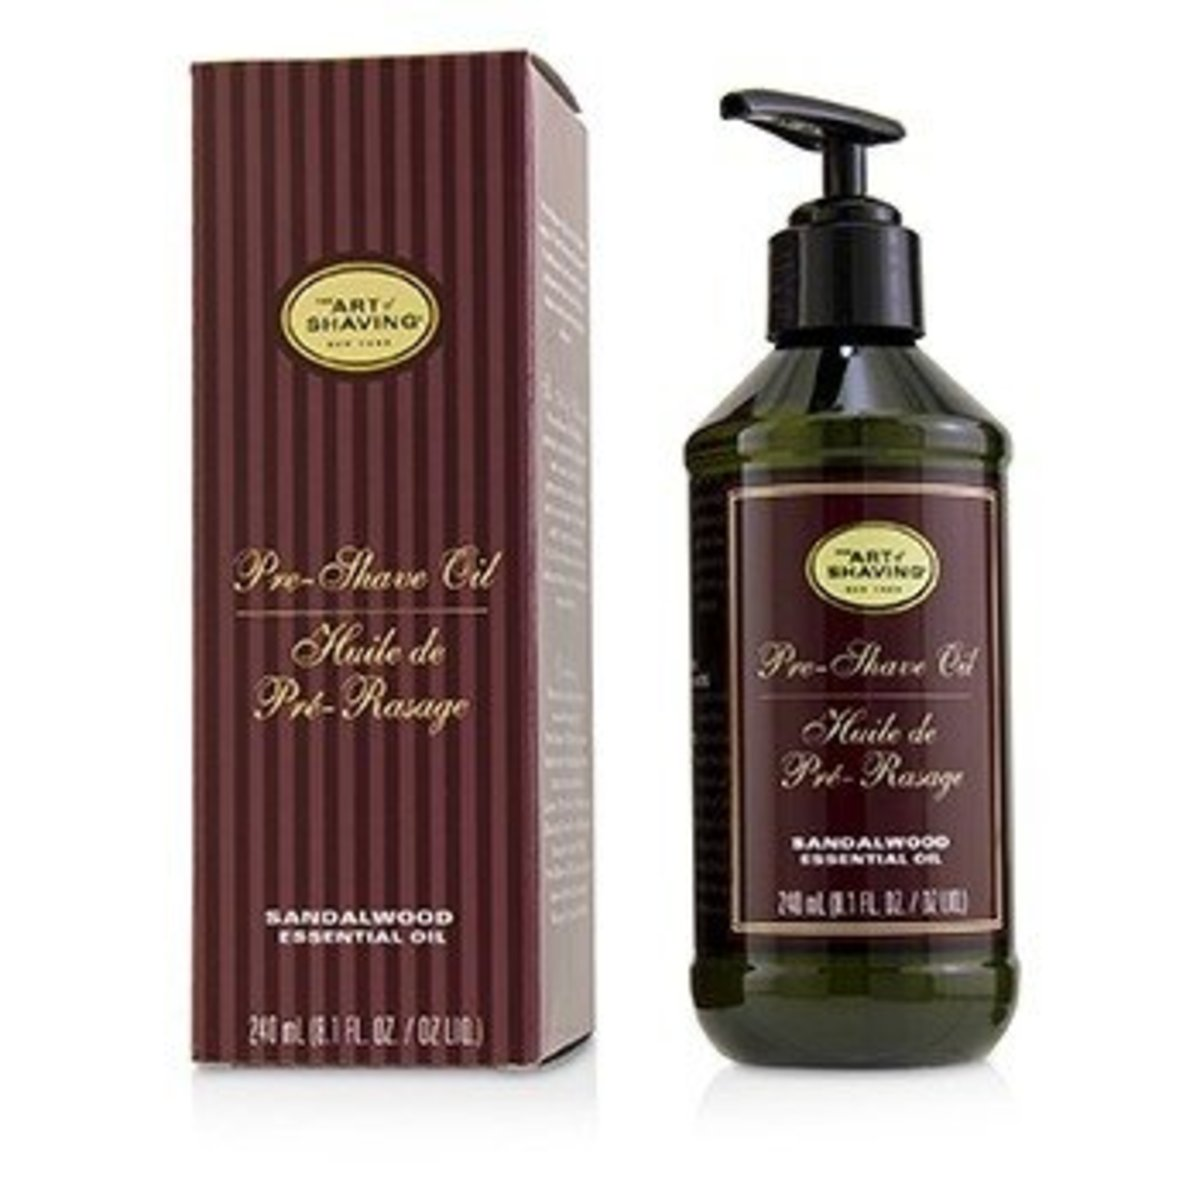 Pre-Shave Oil - Sandalwood Essential Oil (With Pump)  -[平行進口]